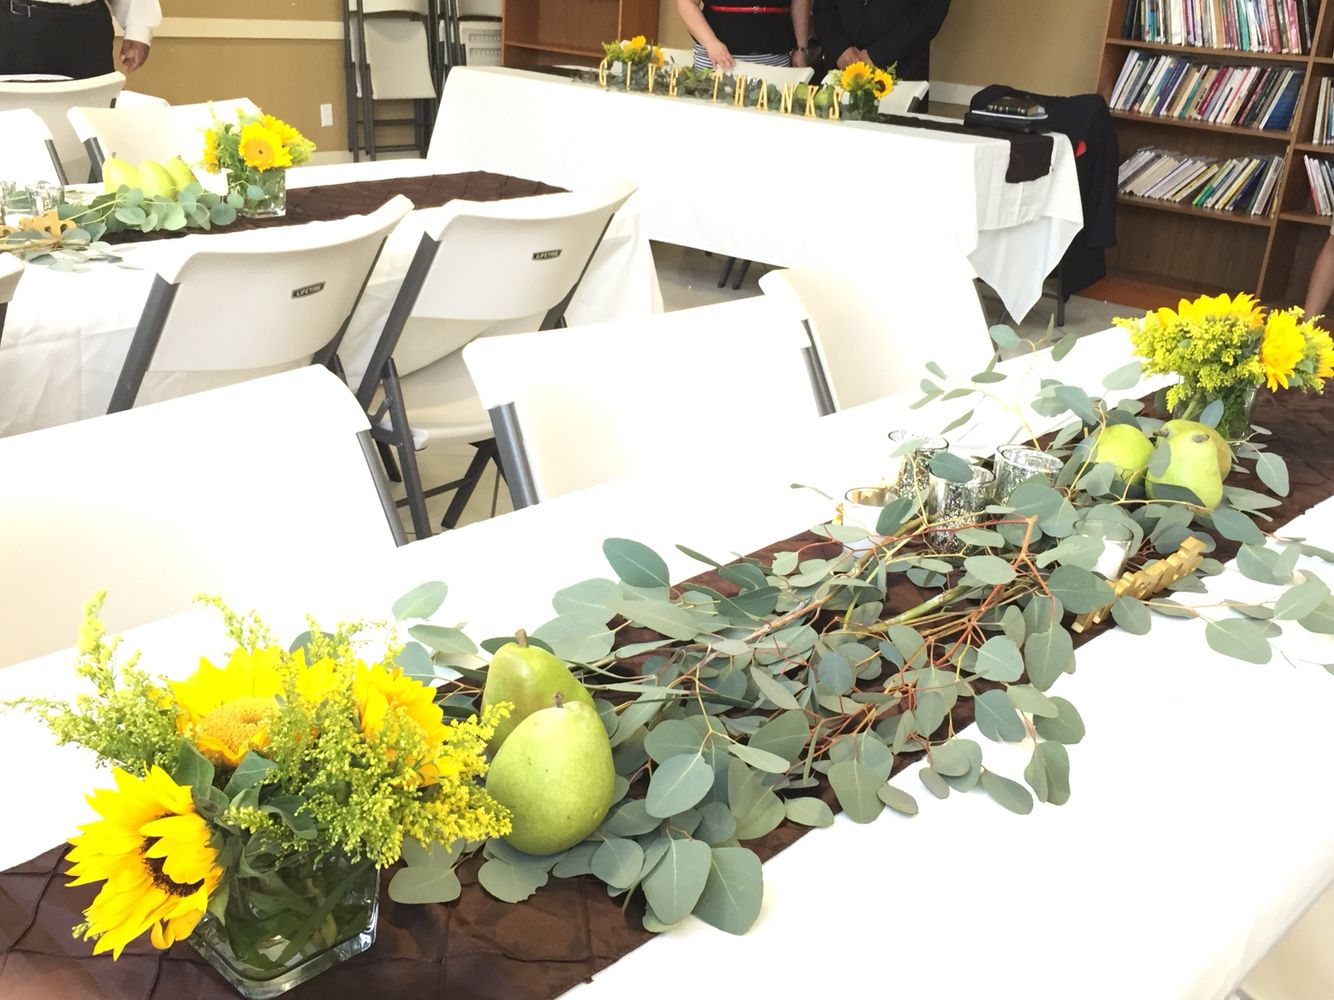 Sunflowers, real pears and eucalyptus/silver tale